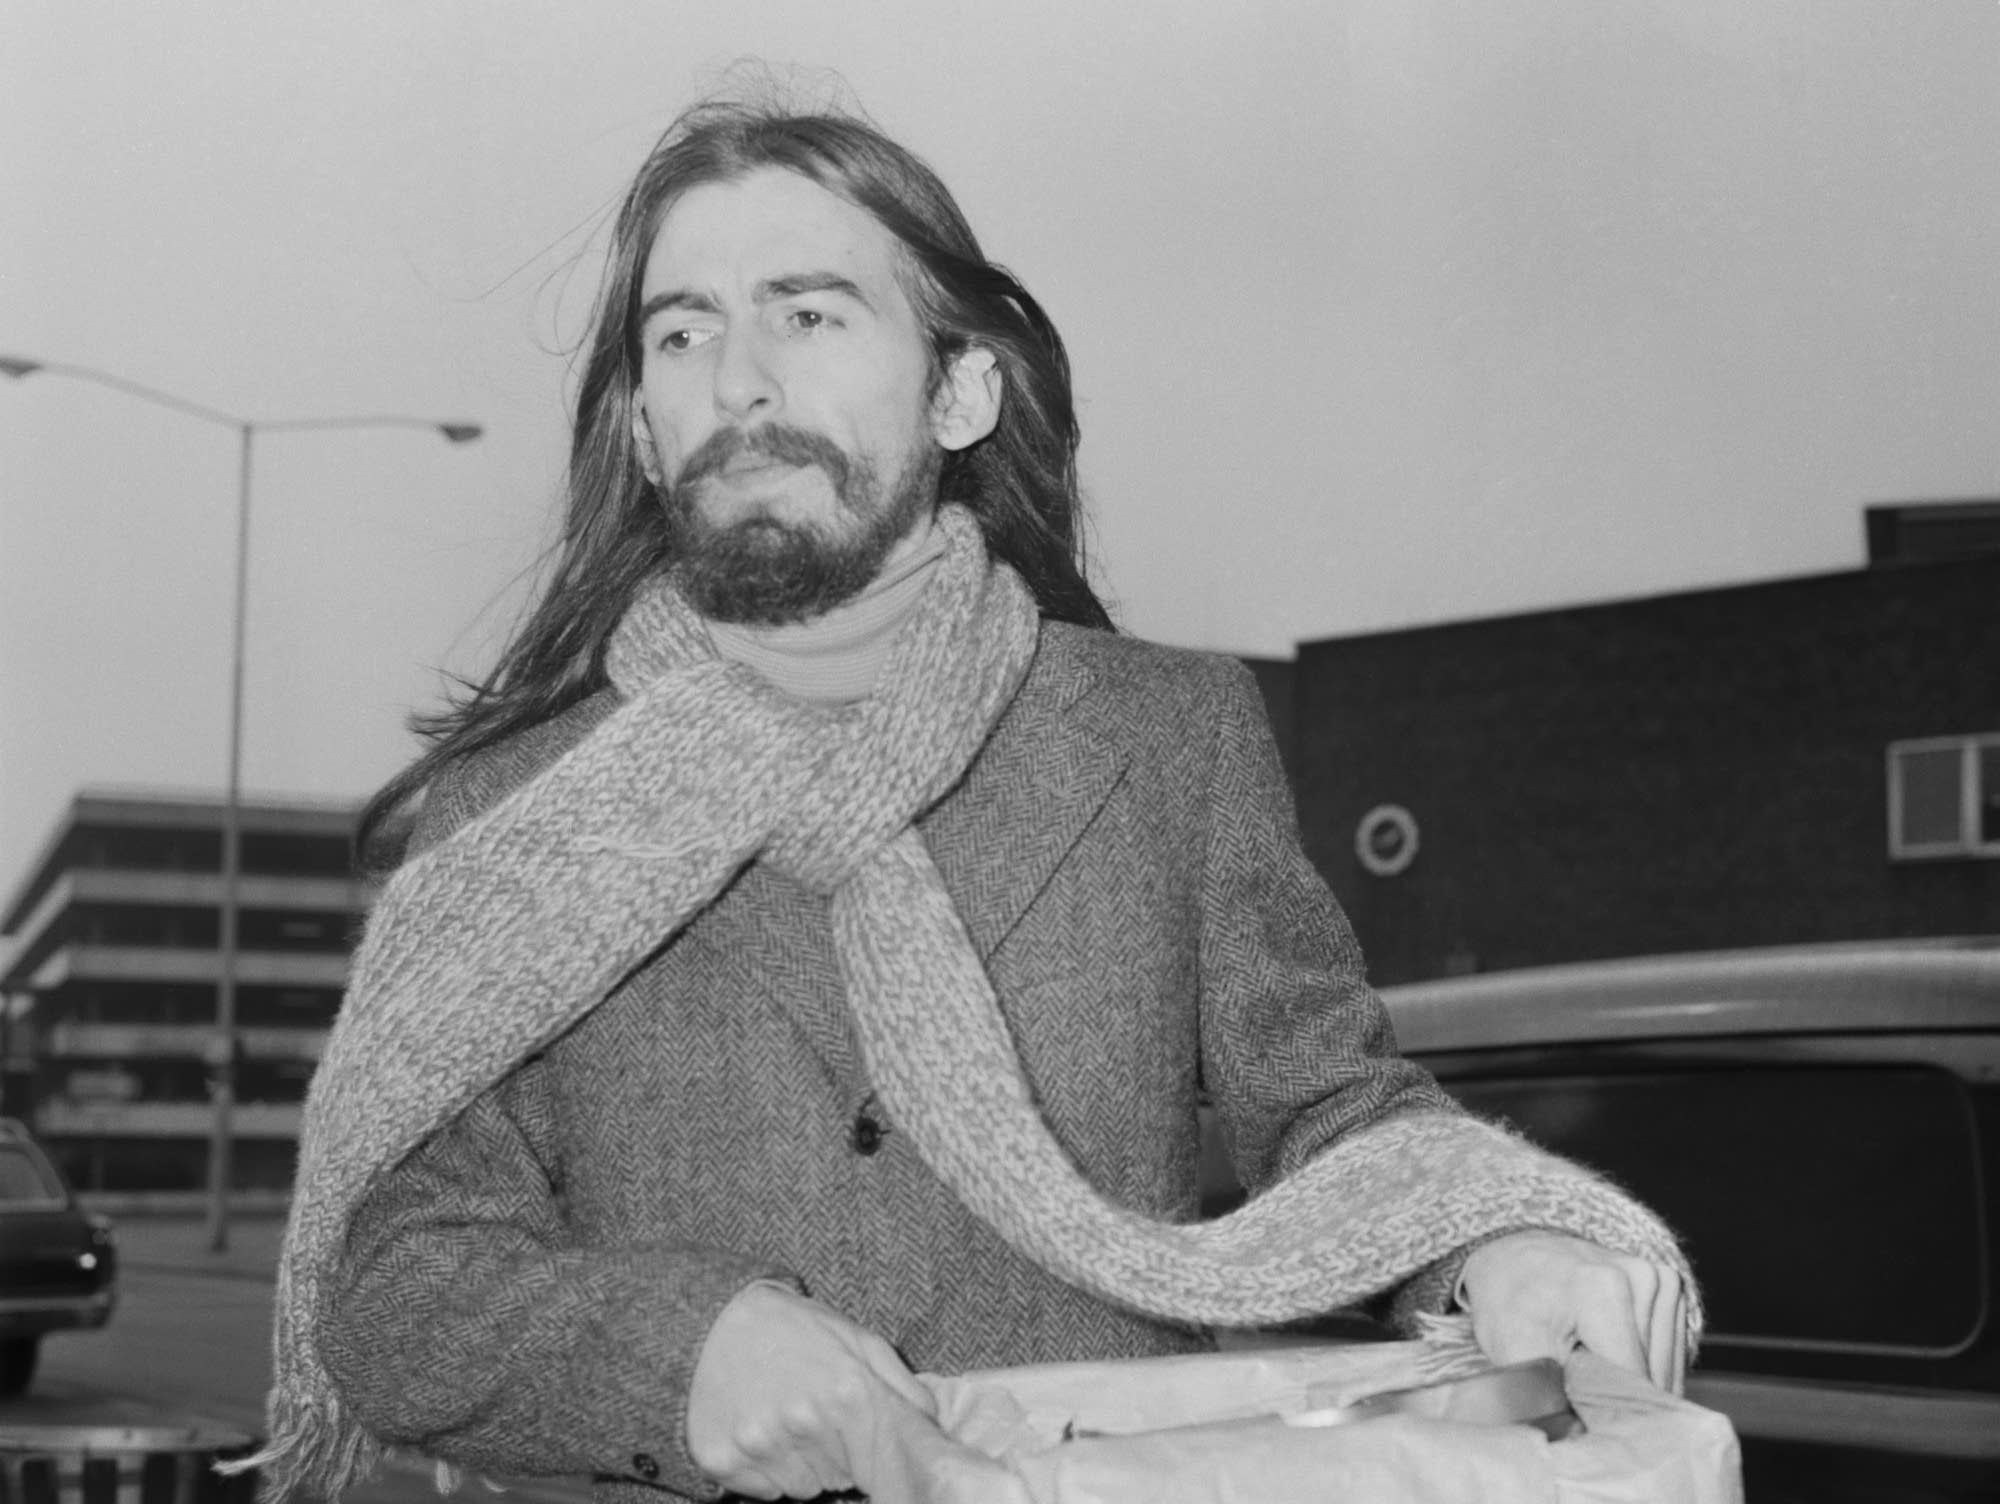 george-harrison-in-1970.jpg (158.8 Kb)